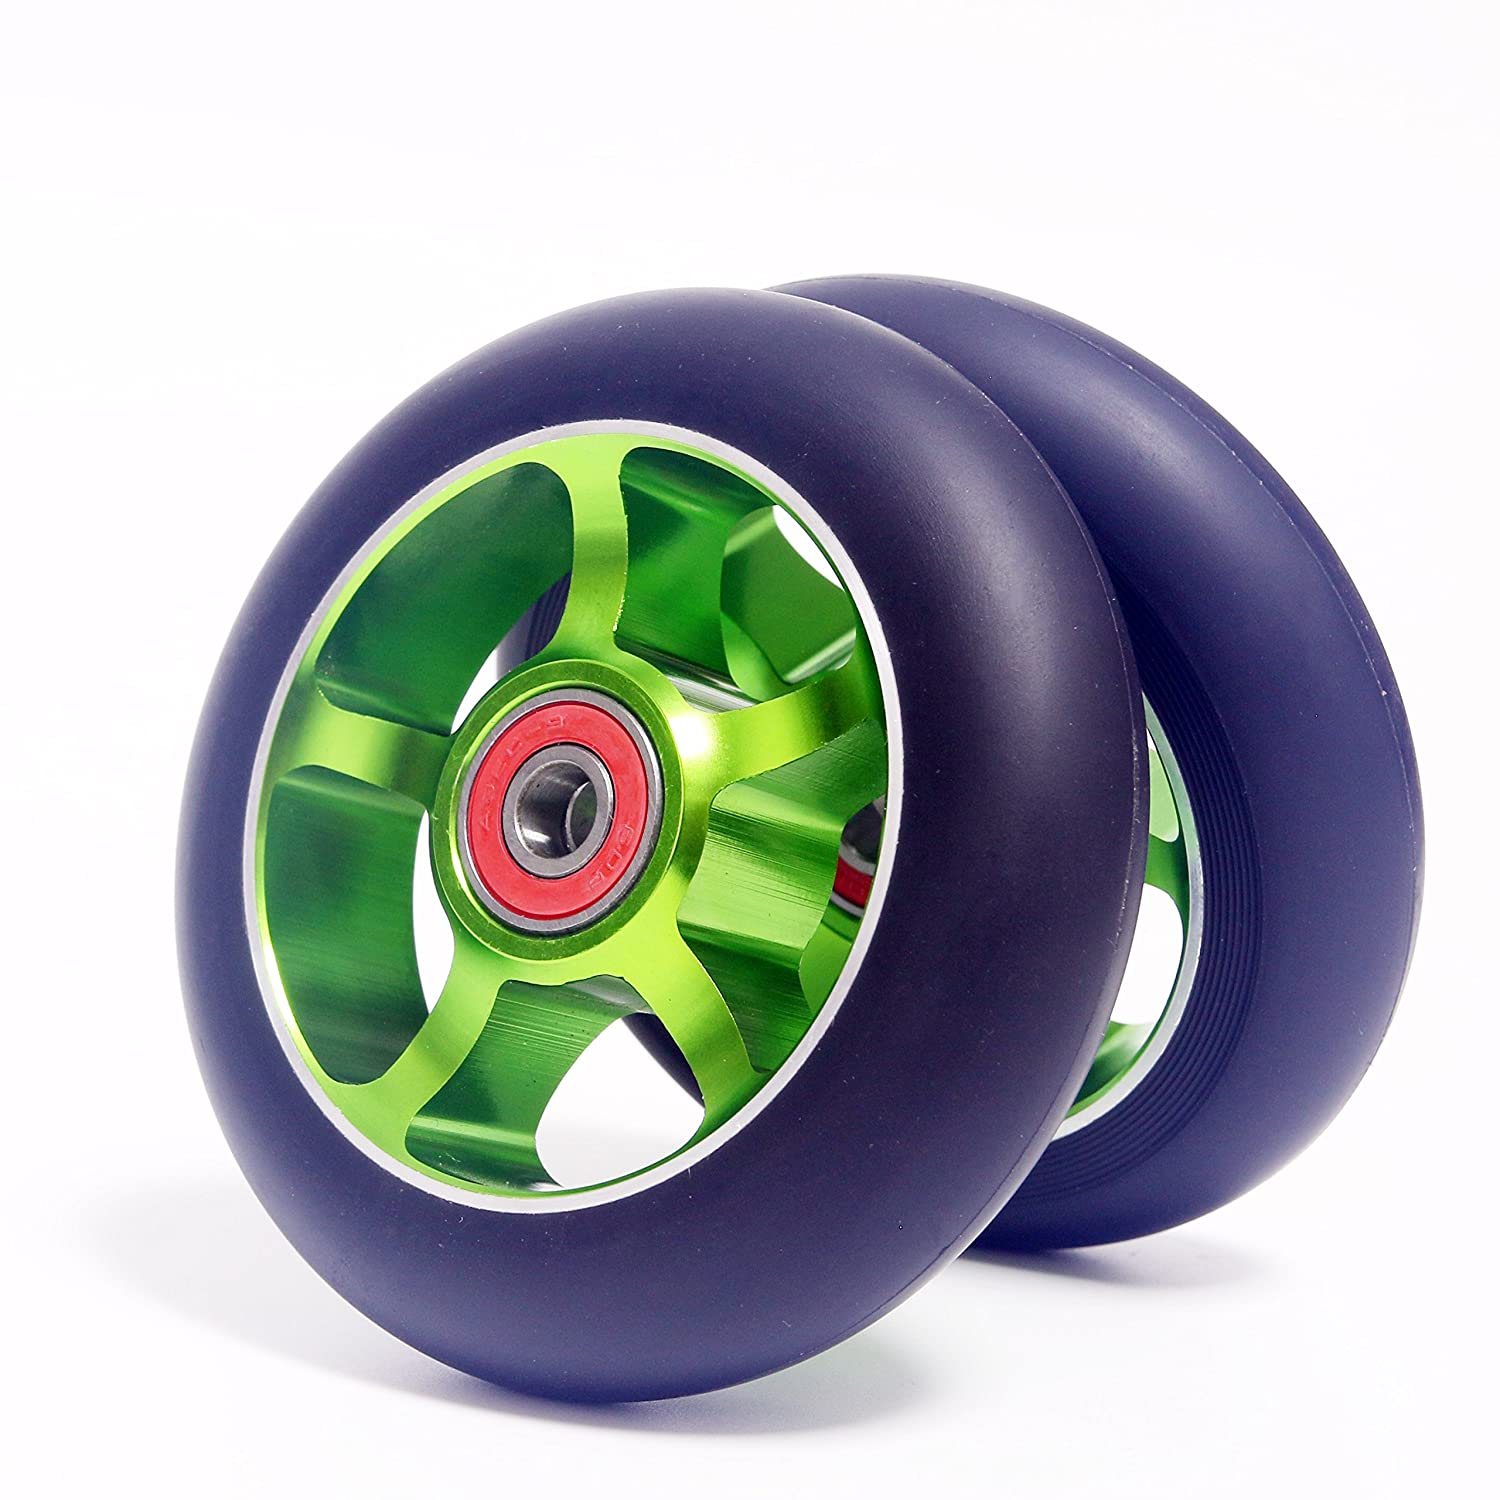 Z-FIRST 2pcs Replacement 100mm Pro Scooter Wheels with ABEC 9 Bearings for MGP//Razor//Lucky//Envy Pro Scooters